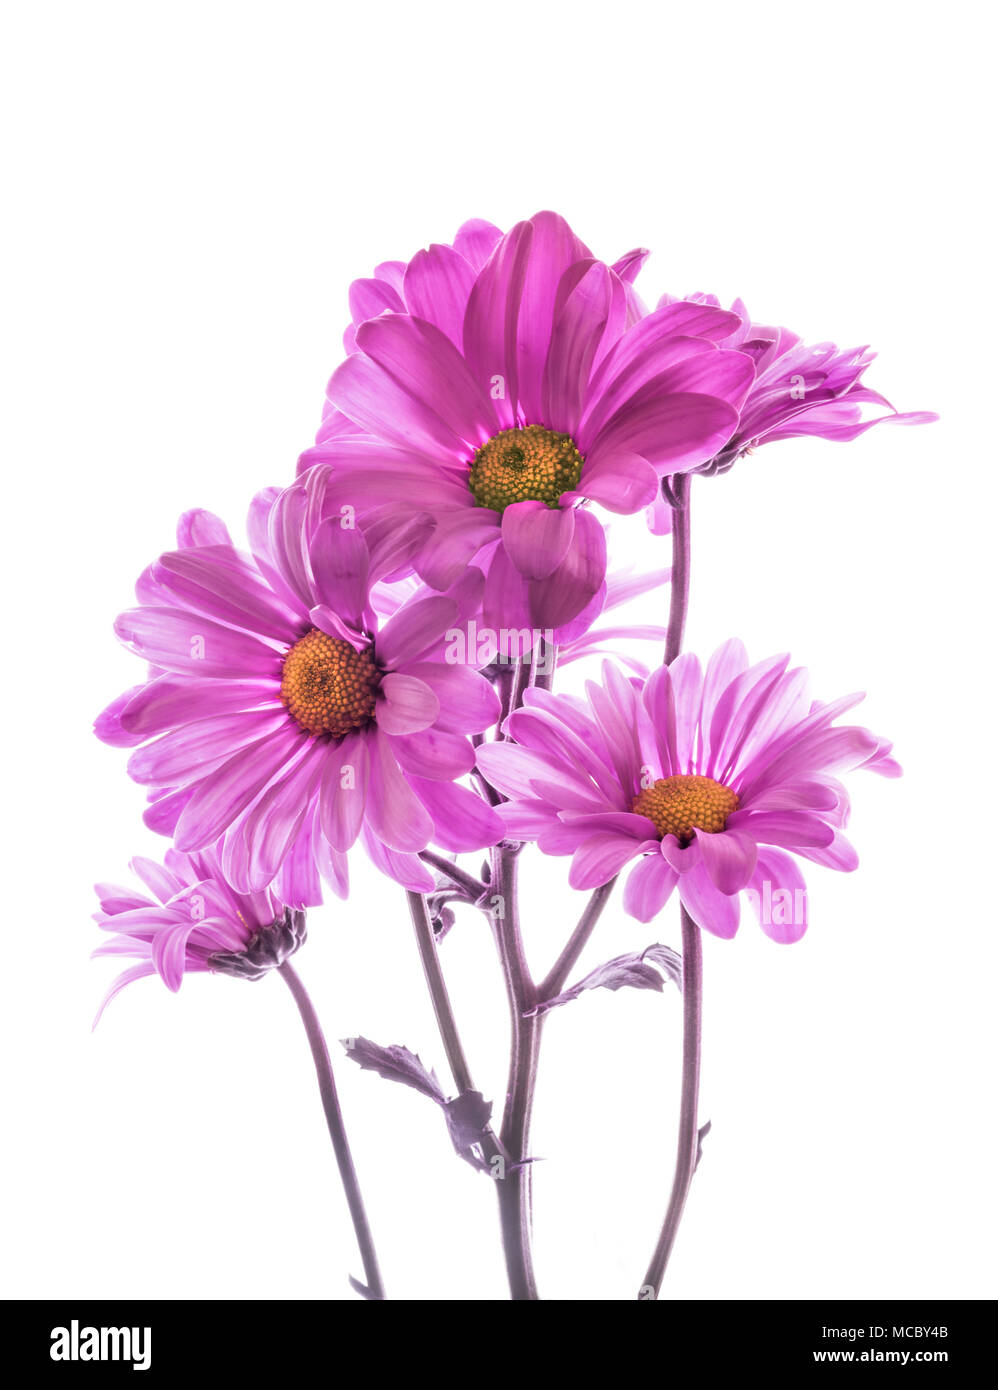 Bunch of Purple pink Mums aganist a white background - Stock Image